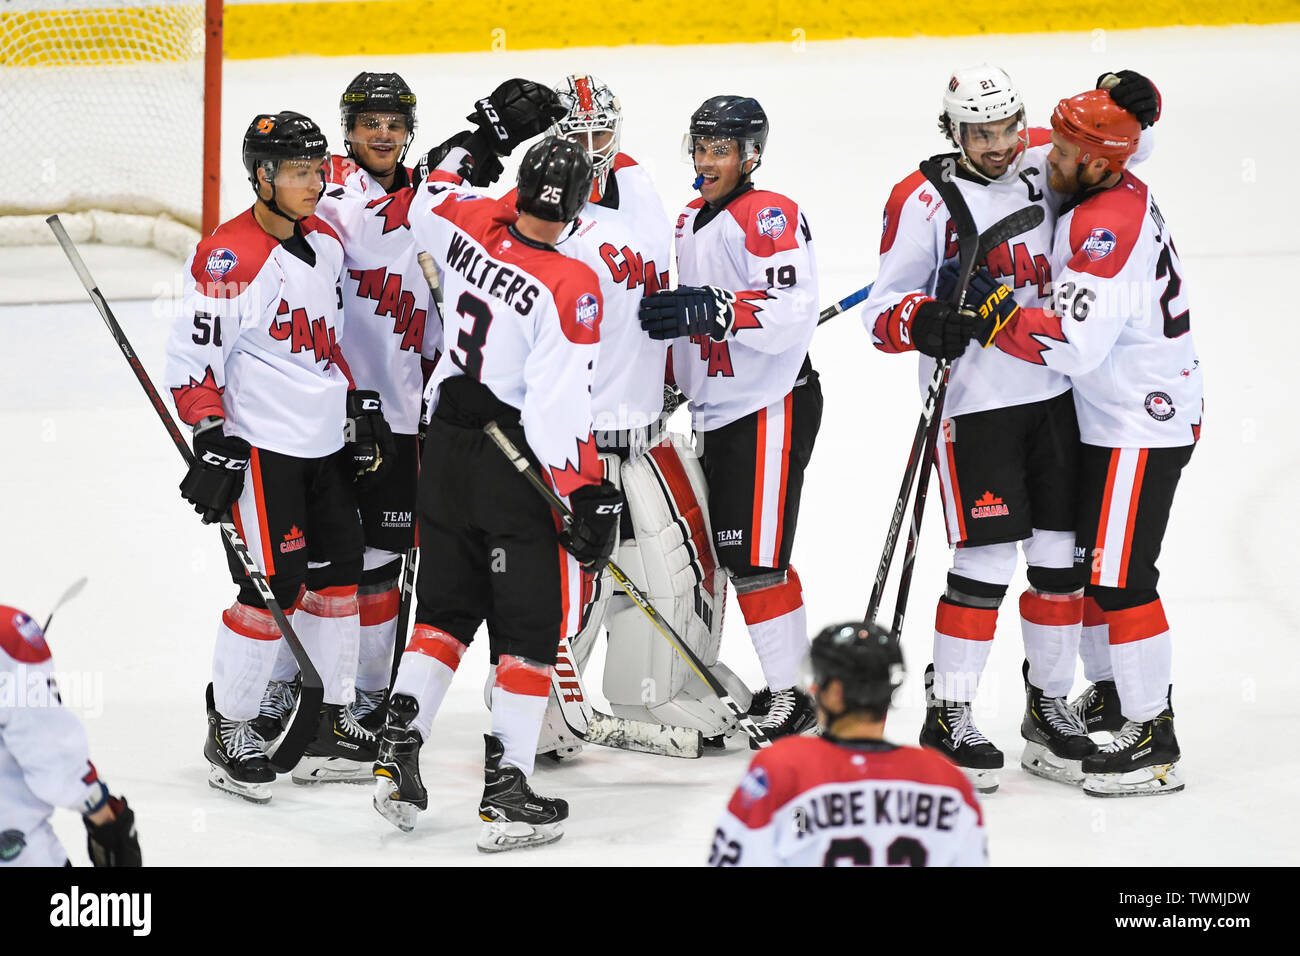 Melbourne, Victoria, Australia. 21st June 2019. 2019 Ice Hockey Classic, Canada versus USA; Canada players celebrate the win Credit: Action Plus Sports Images/Alamy Live News Stock Photo